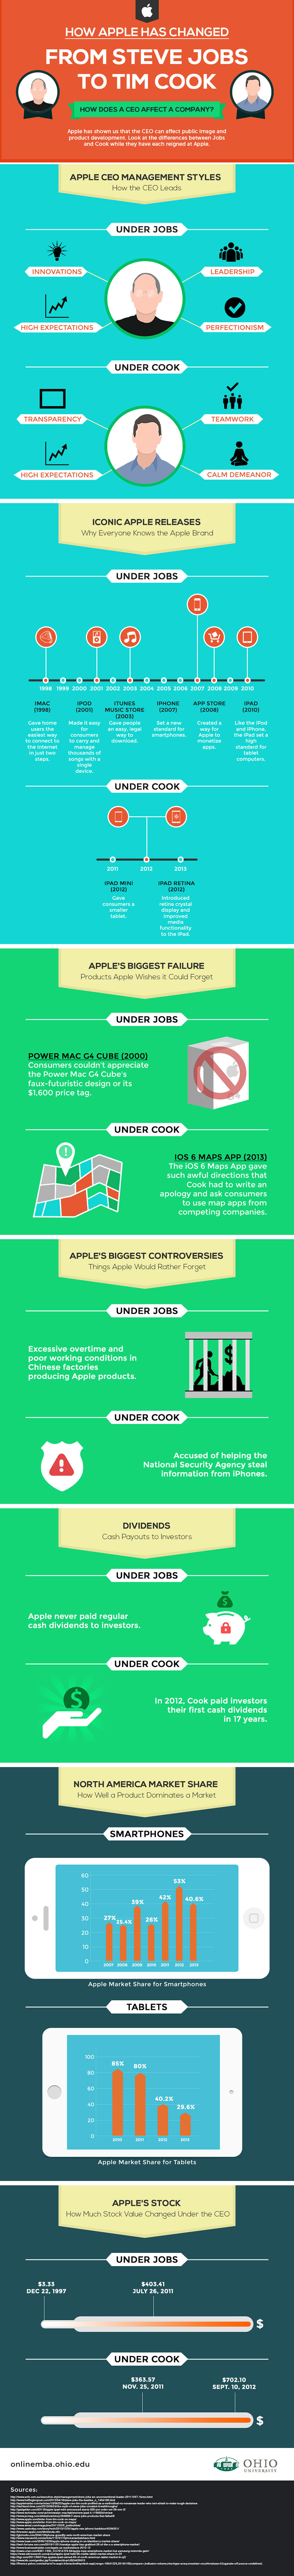 Une infographie qui illustre l'évolution d'Apple de Steve Jobs à Tim Cook